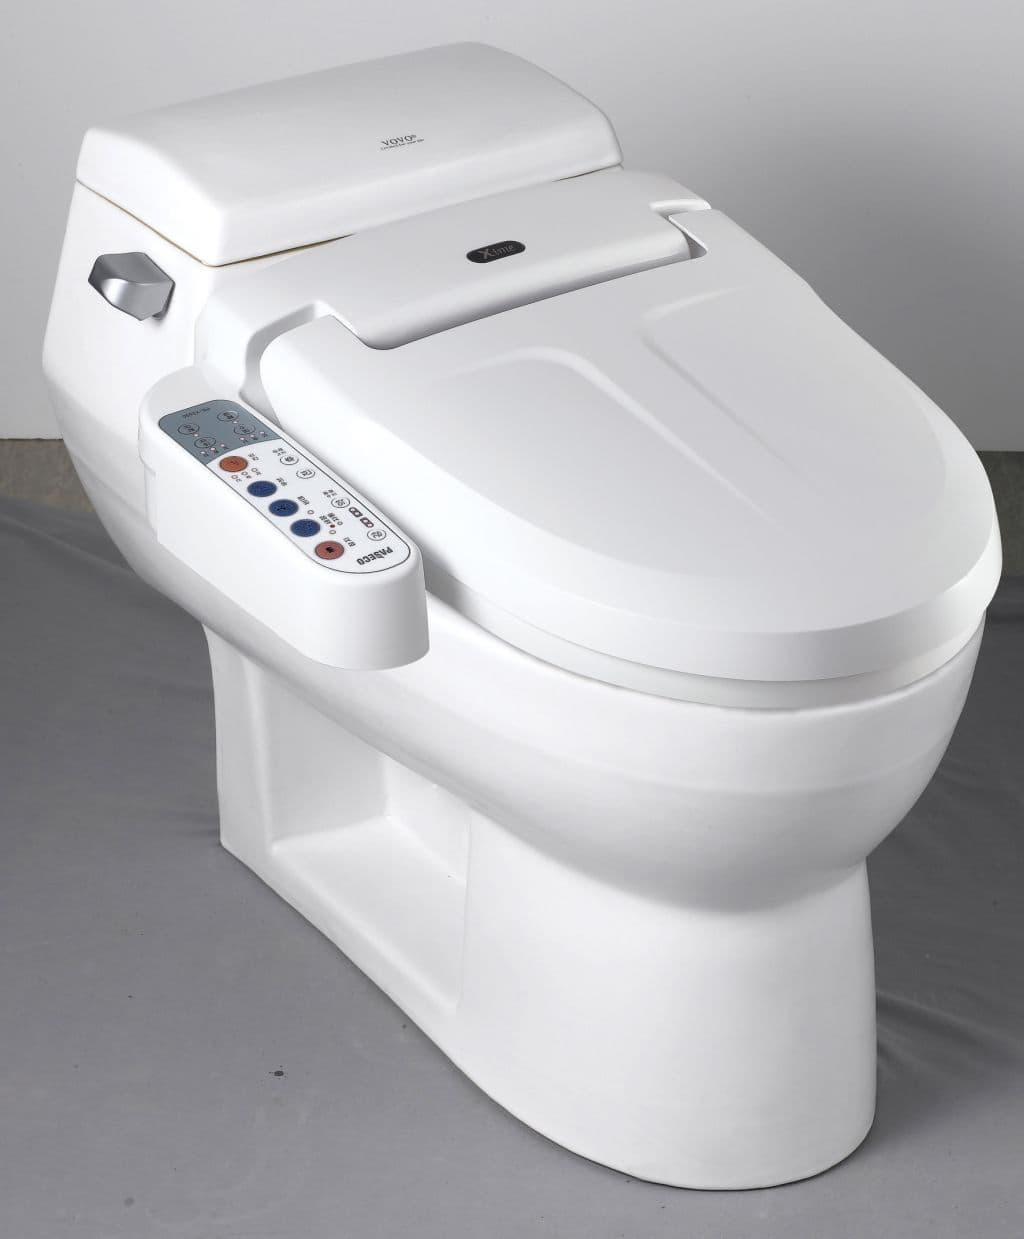 Paseco Electric Bidet PB X 6500 PB X 5600 PB X 2000 From PASECO CO LT